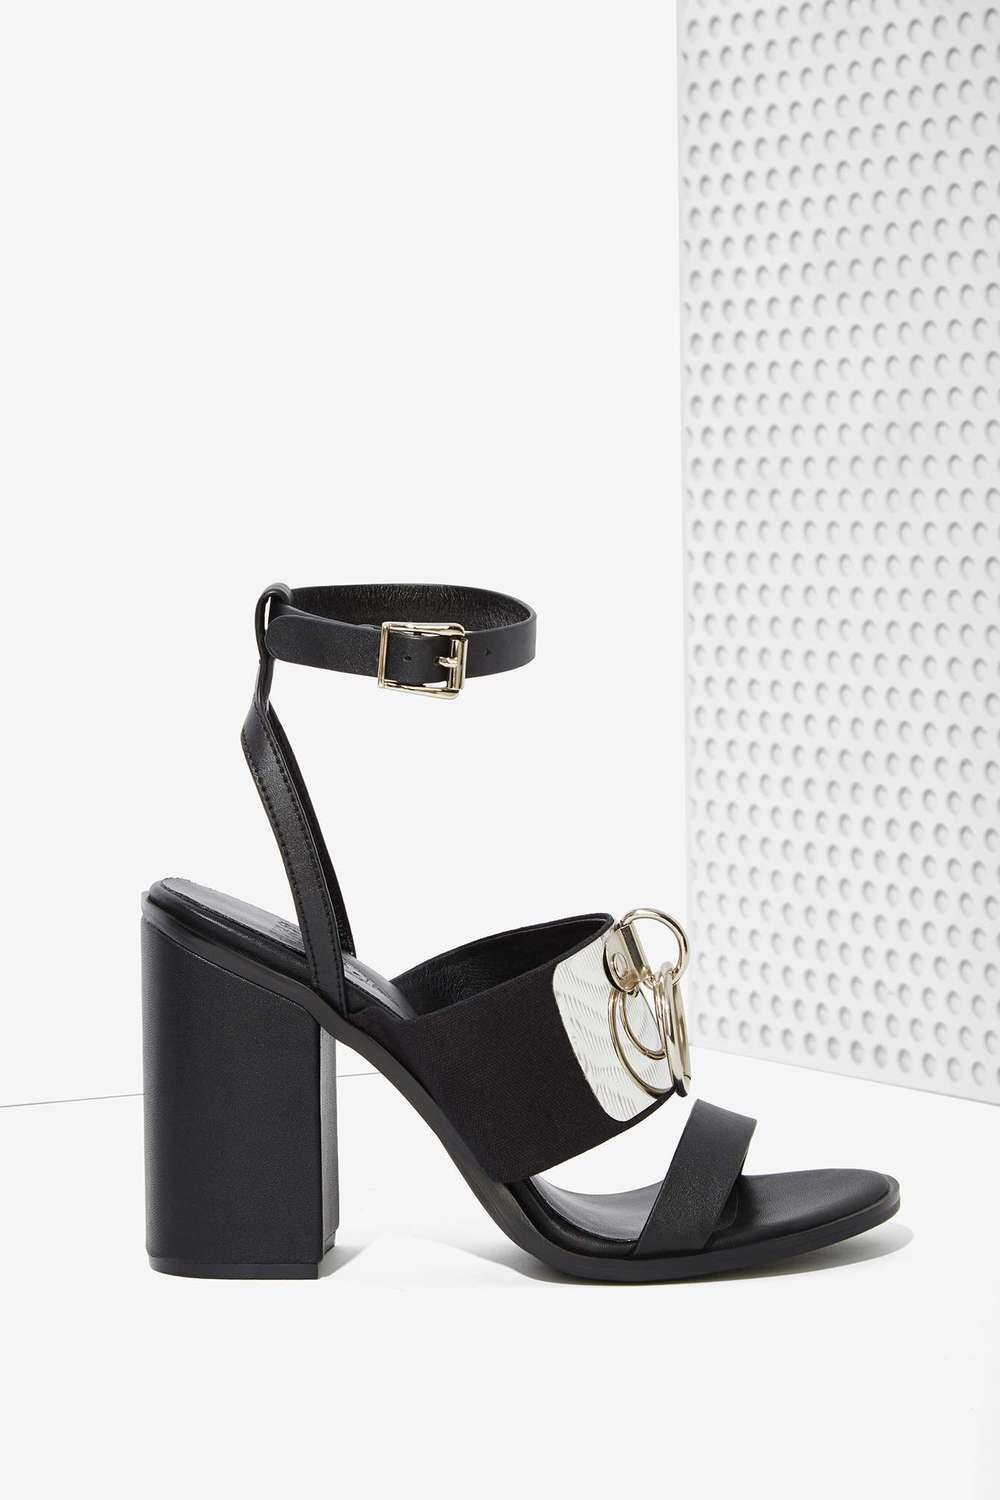 unif-vault-cut-out-leather-block-heel-nastygal.jpg